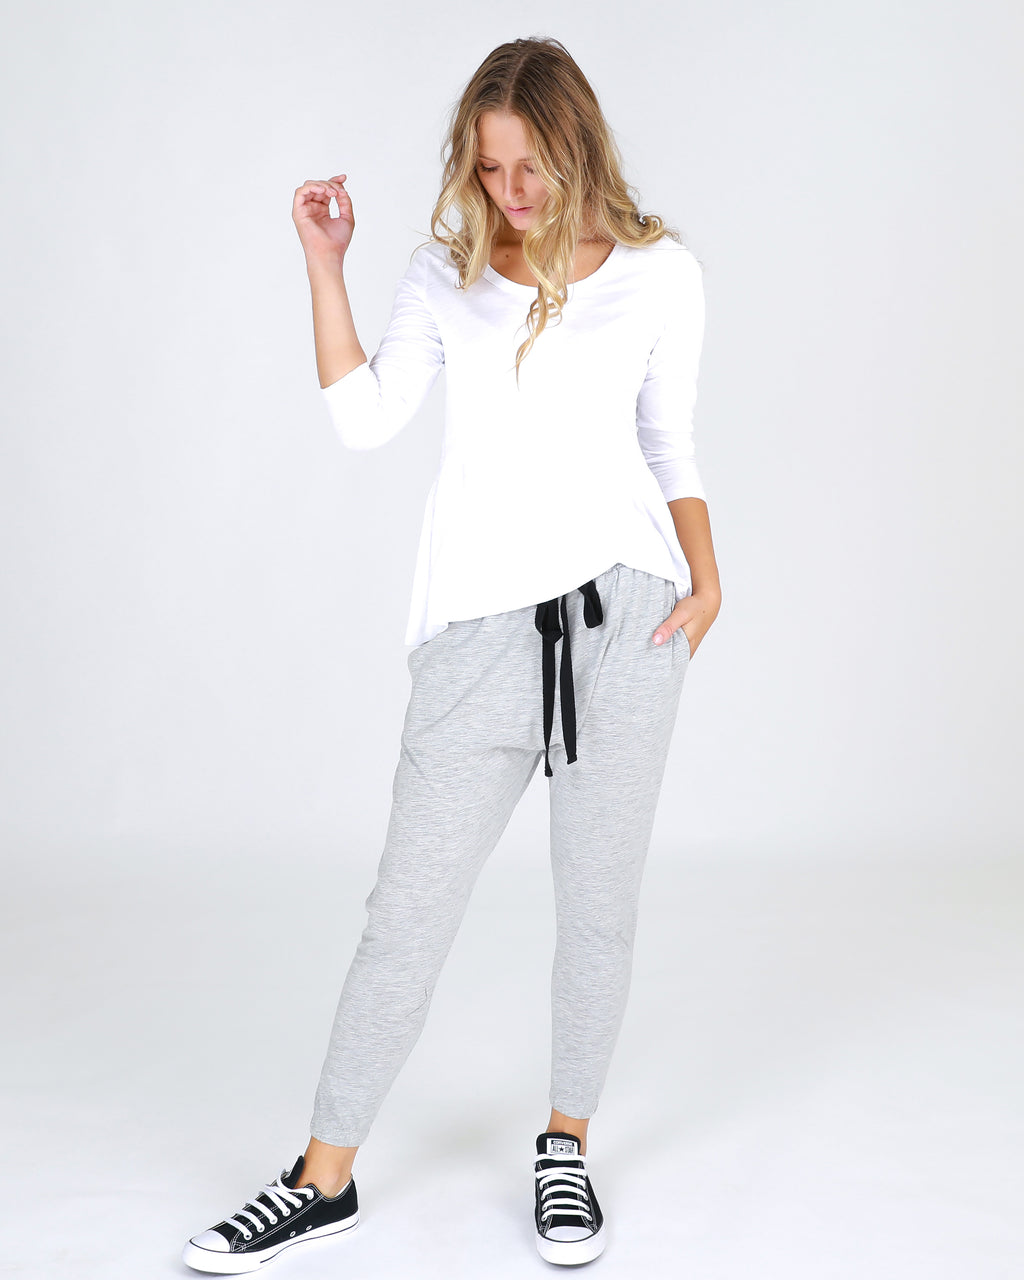 3rd Story | Bondi Joggers | Salt & Sand Women's Clothing & Accessories Inverloch